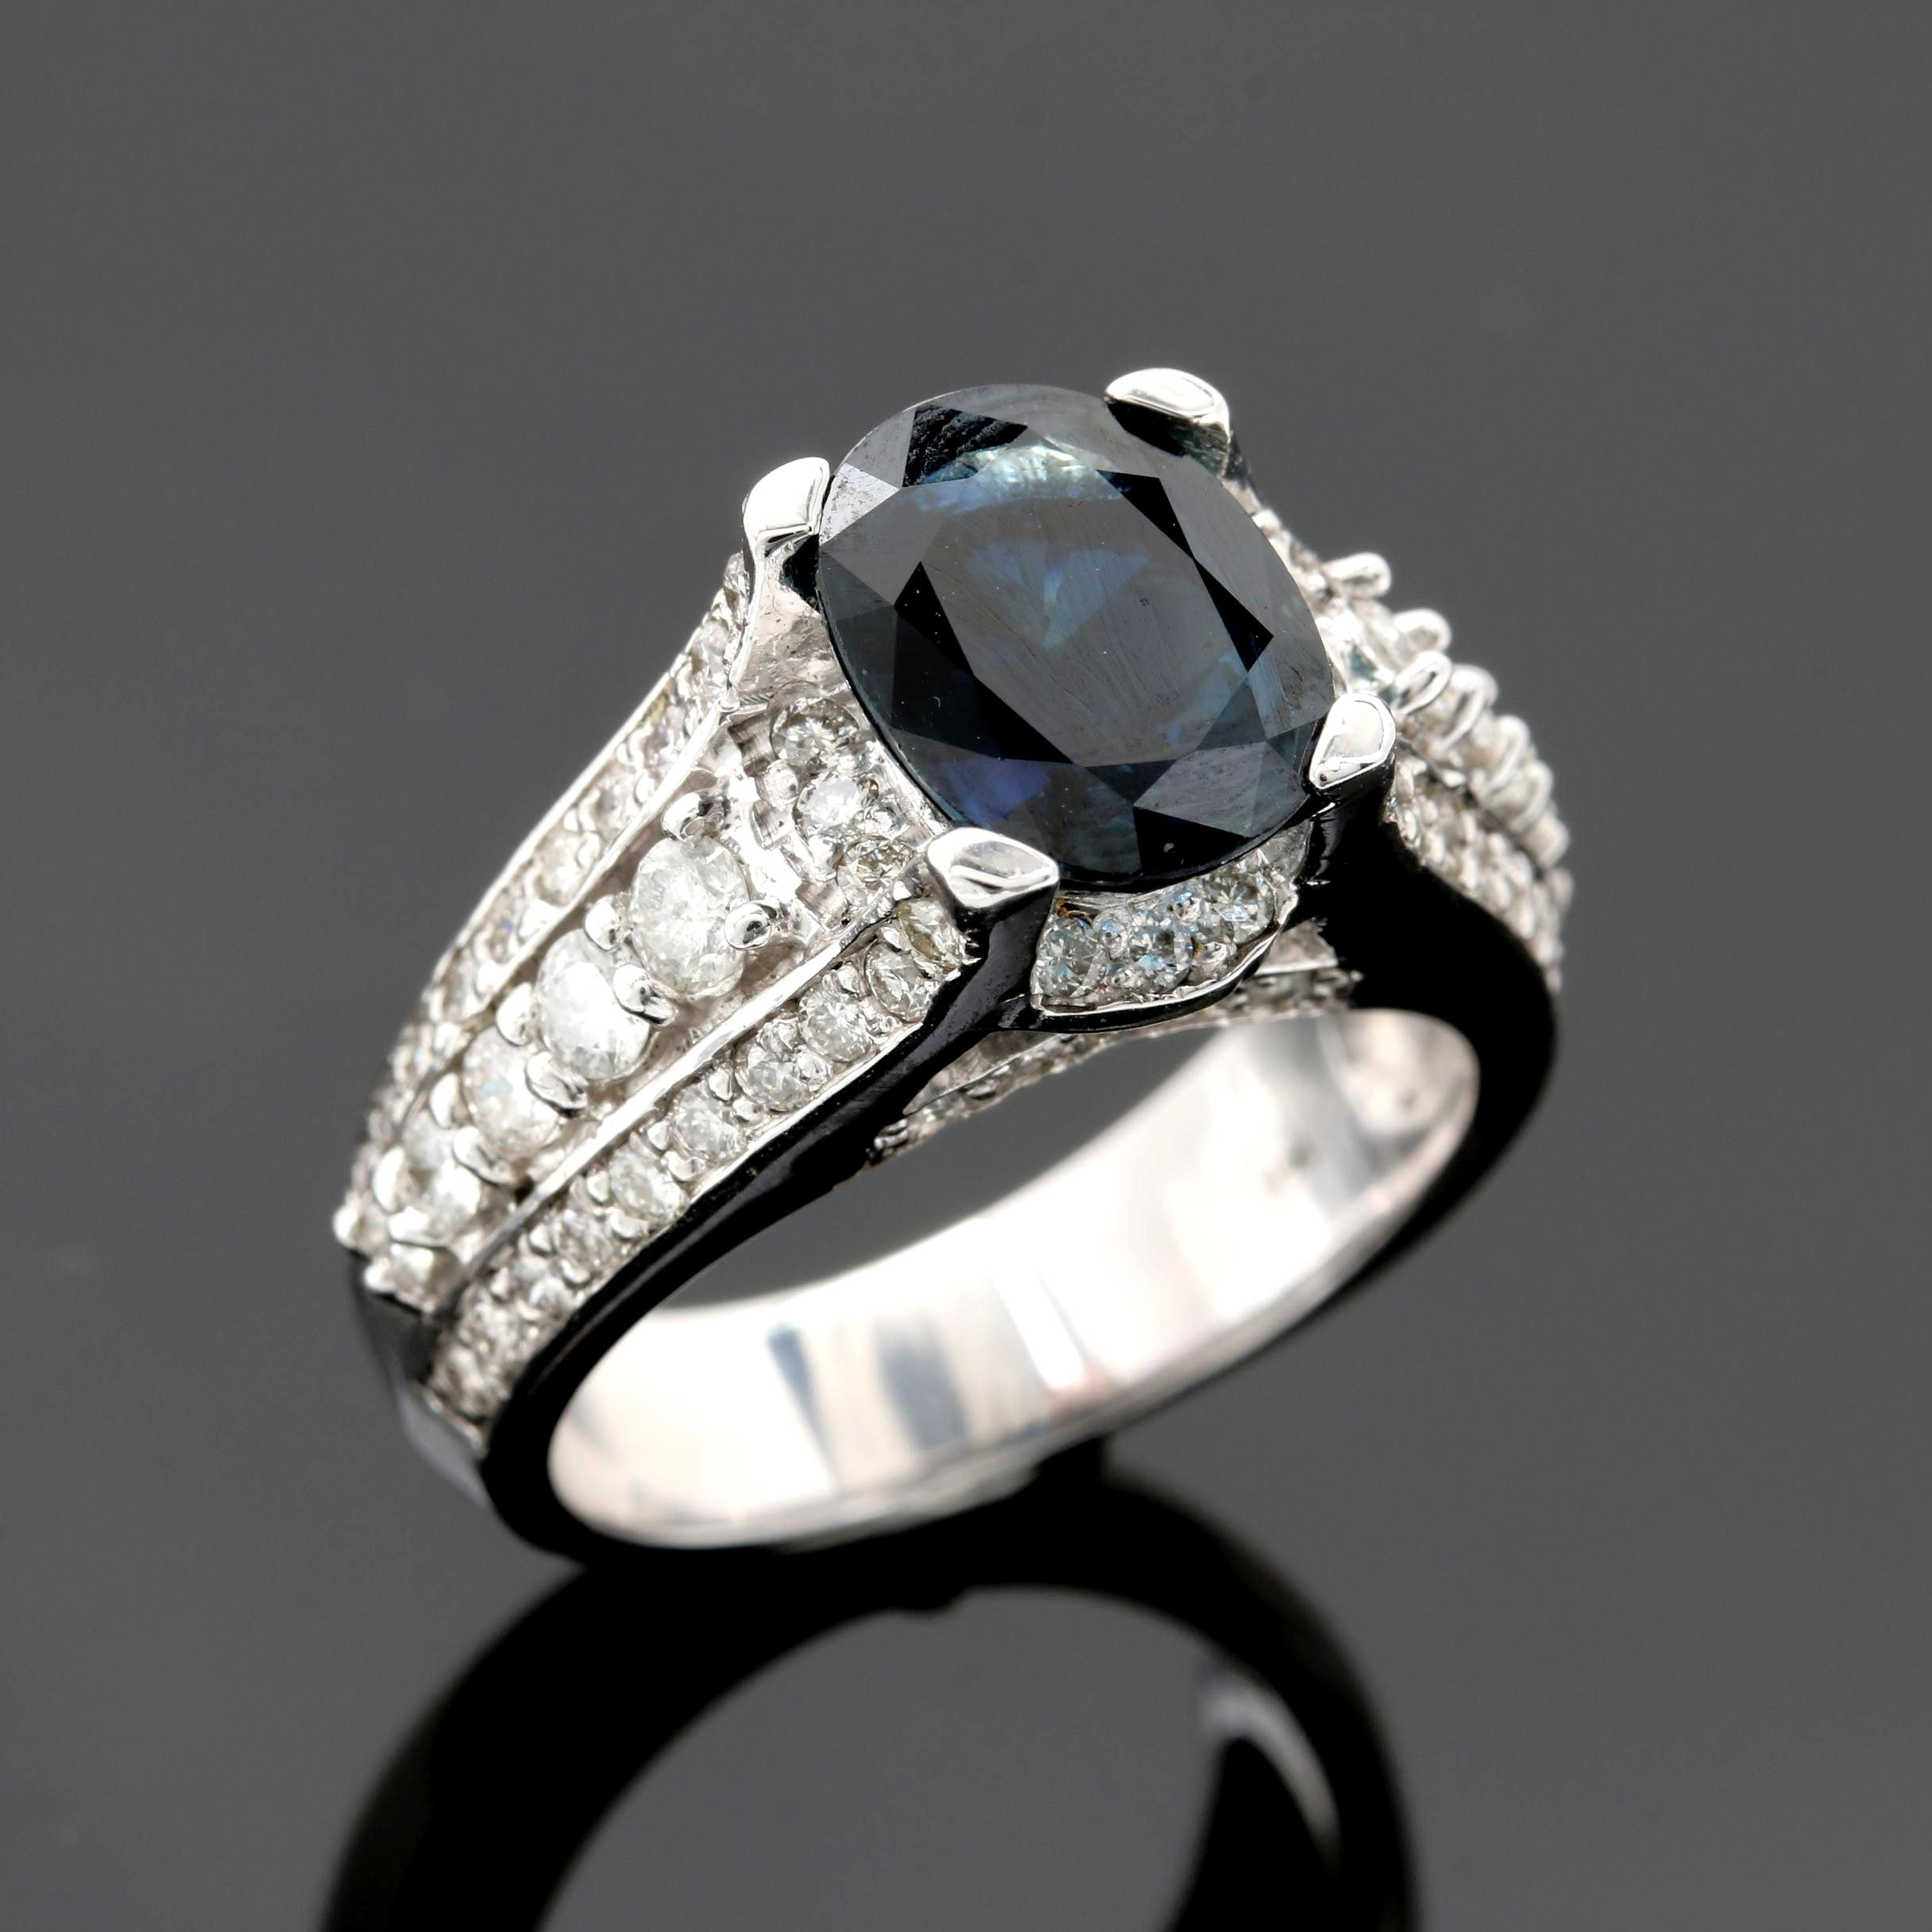 14K White Gold 3.01 CT Blue Sapphire and Diamond Ring